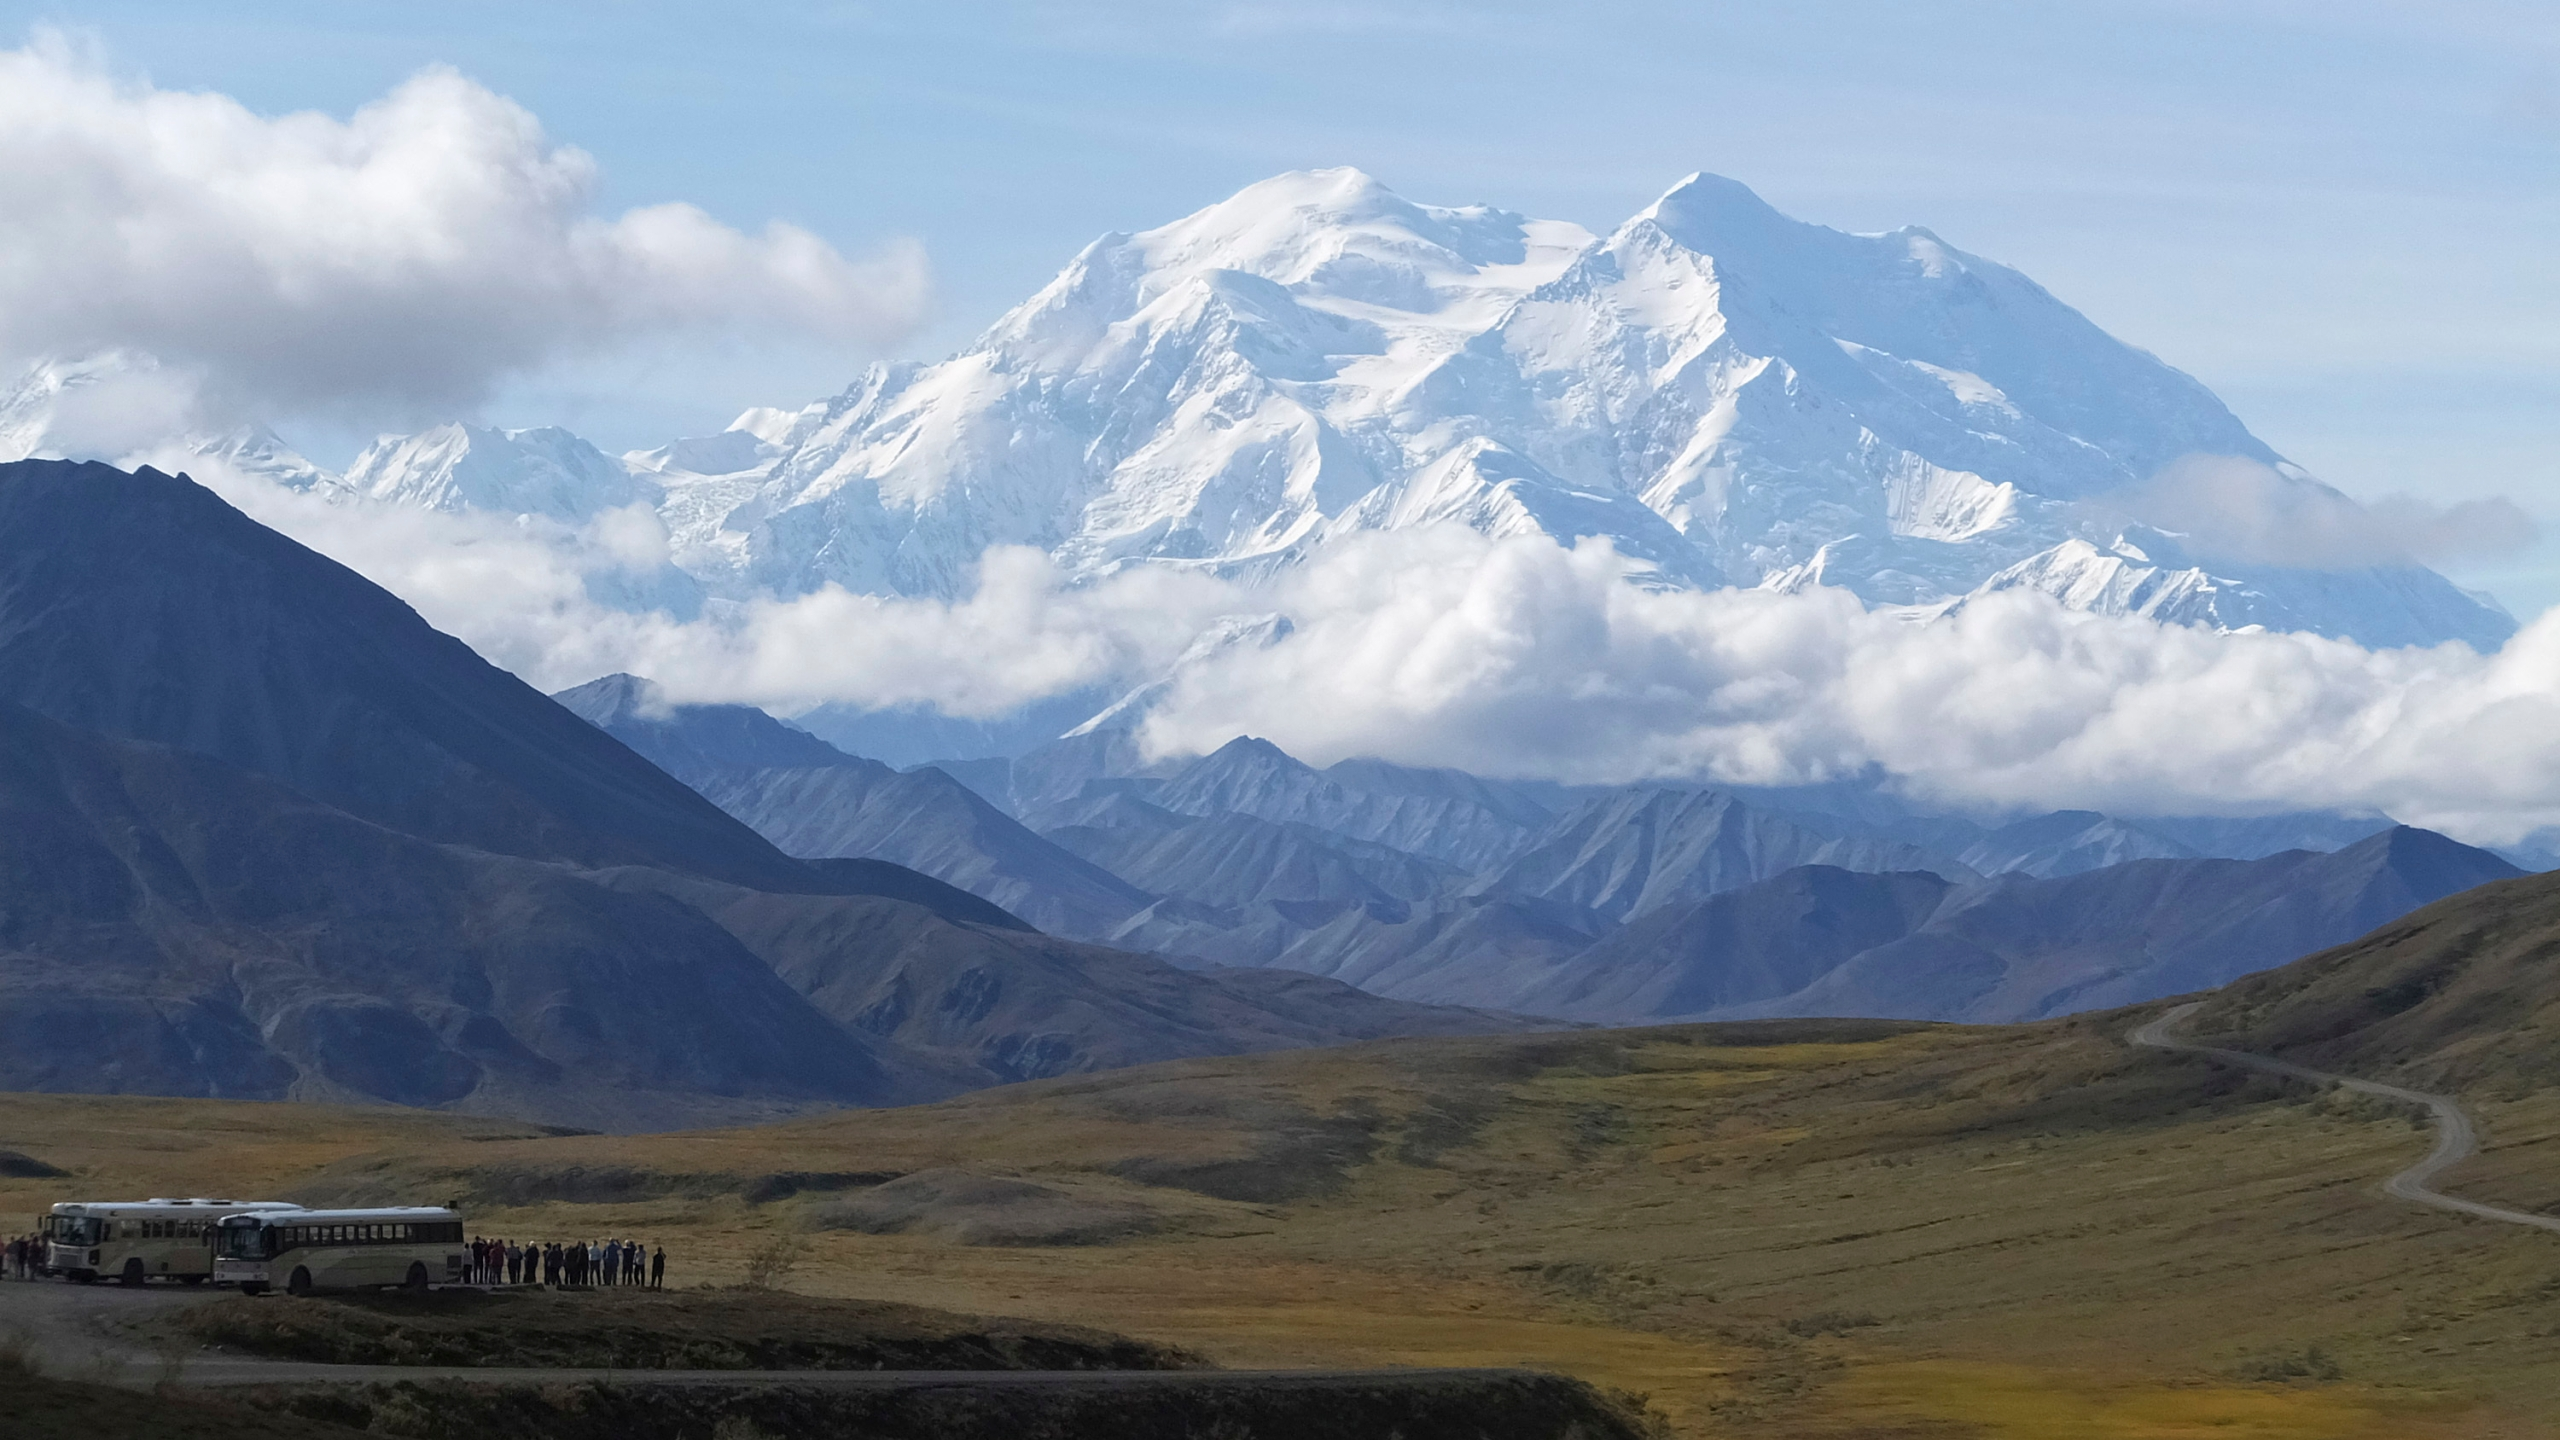 In this Aug. 26, 2016, file photo sightseeing buses and tourists are seen at a pullout popular for taking in views of North America's tallest peak, Denali, in Denali National Park and Preserve, Alaska. (AP Photo/Becky Bohrer, File)